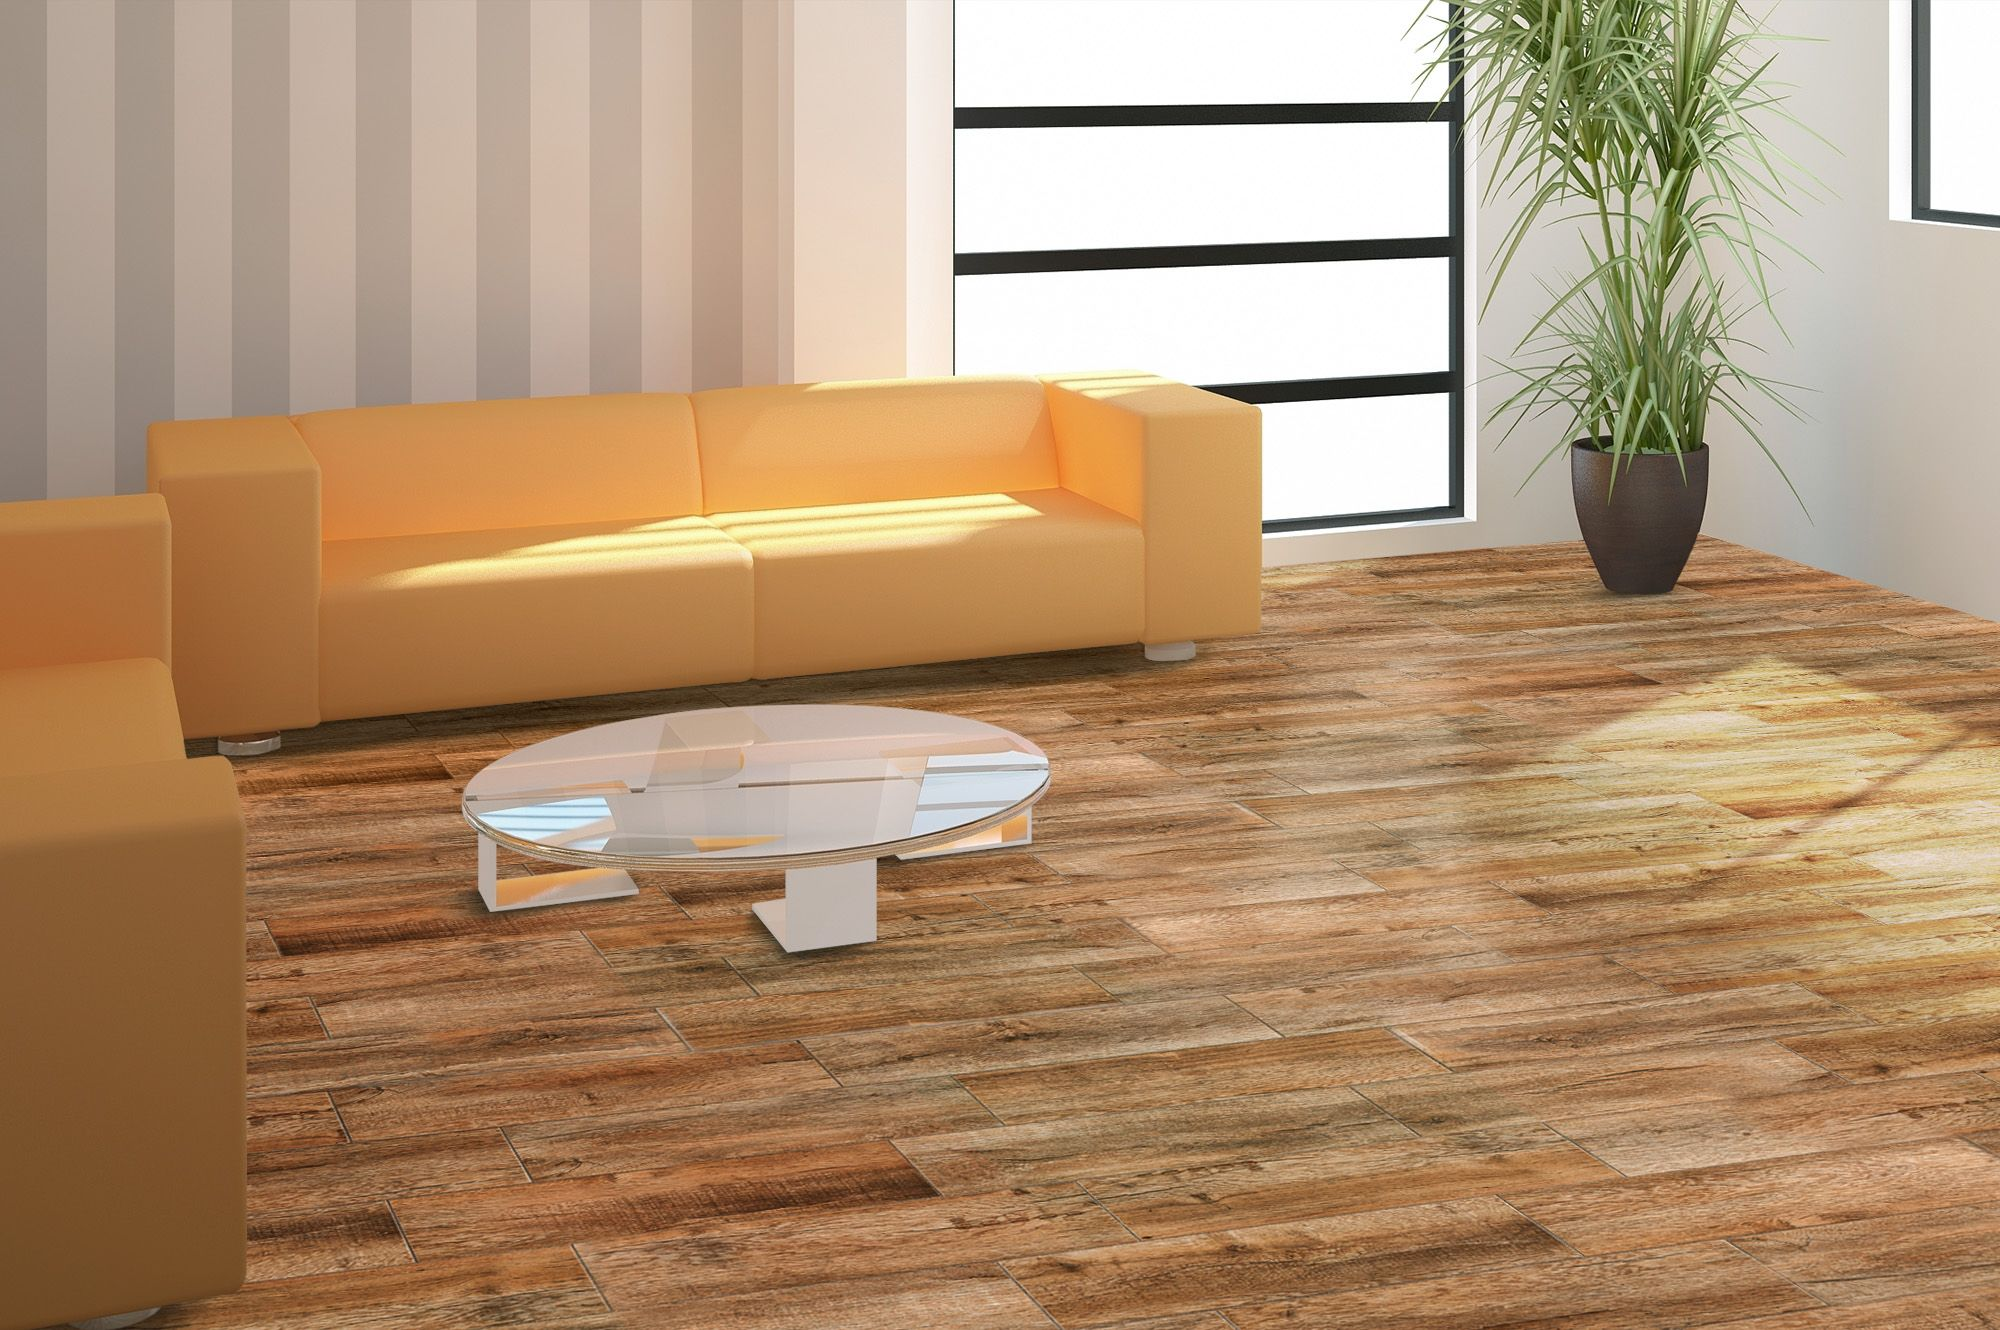 Salerno Ceramic Tile - Barcelona Wood Series | Tile looks ...